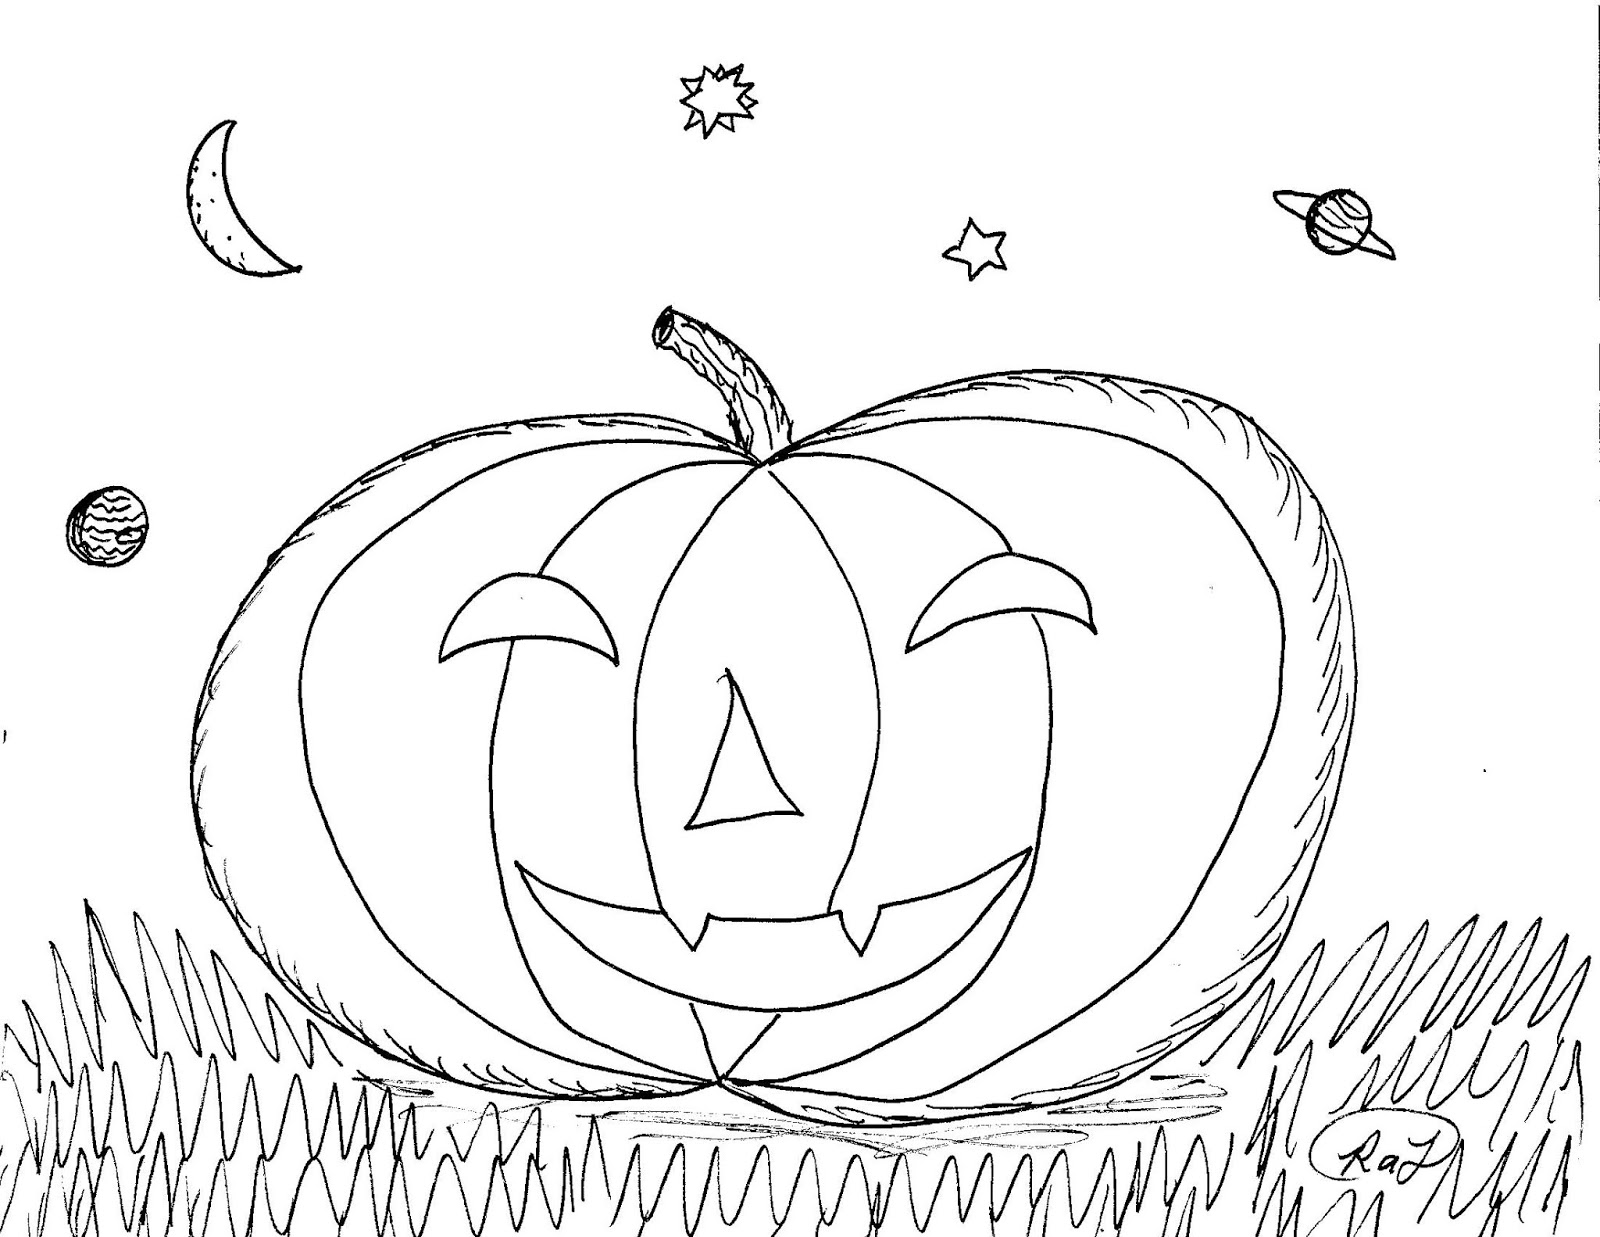 Robin's Great Coloring Pages: October 2019